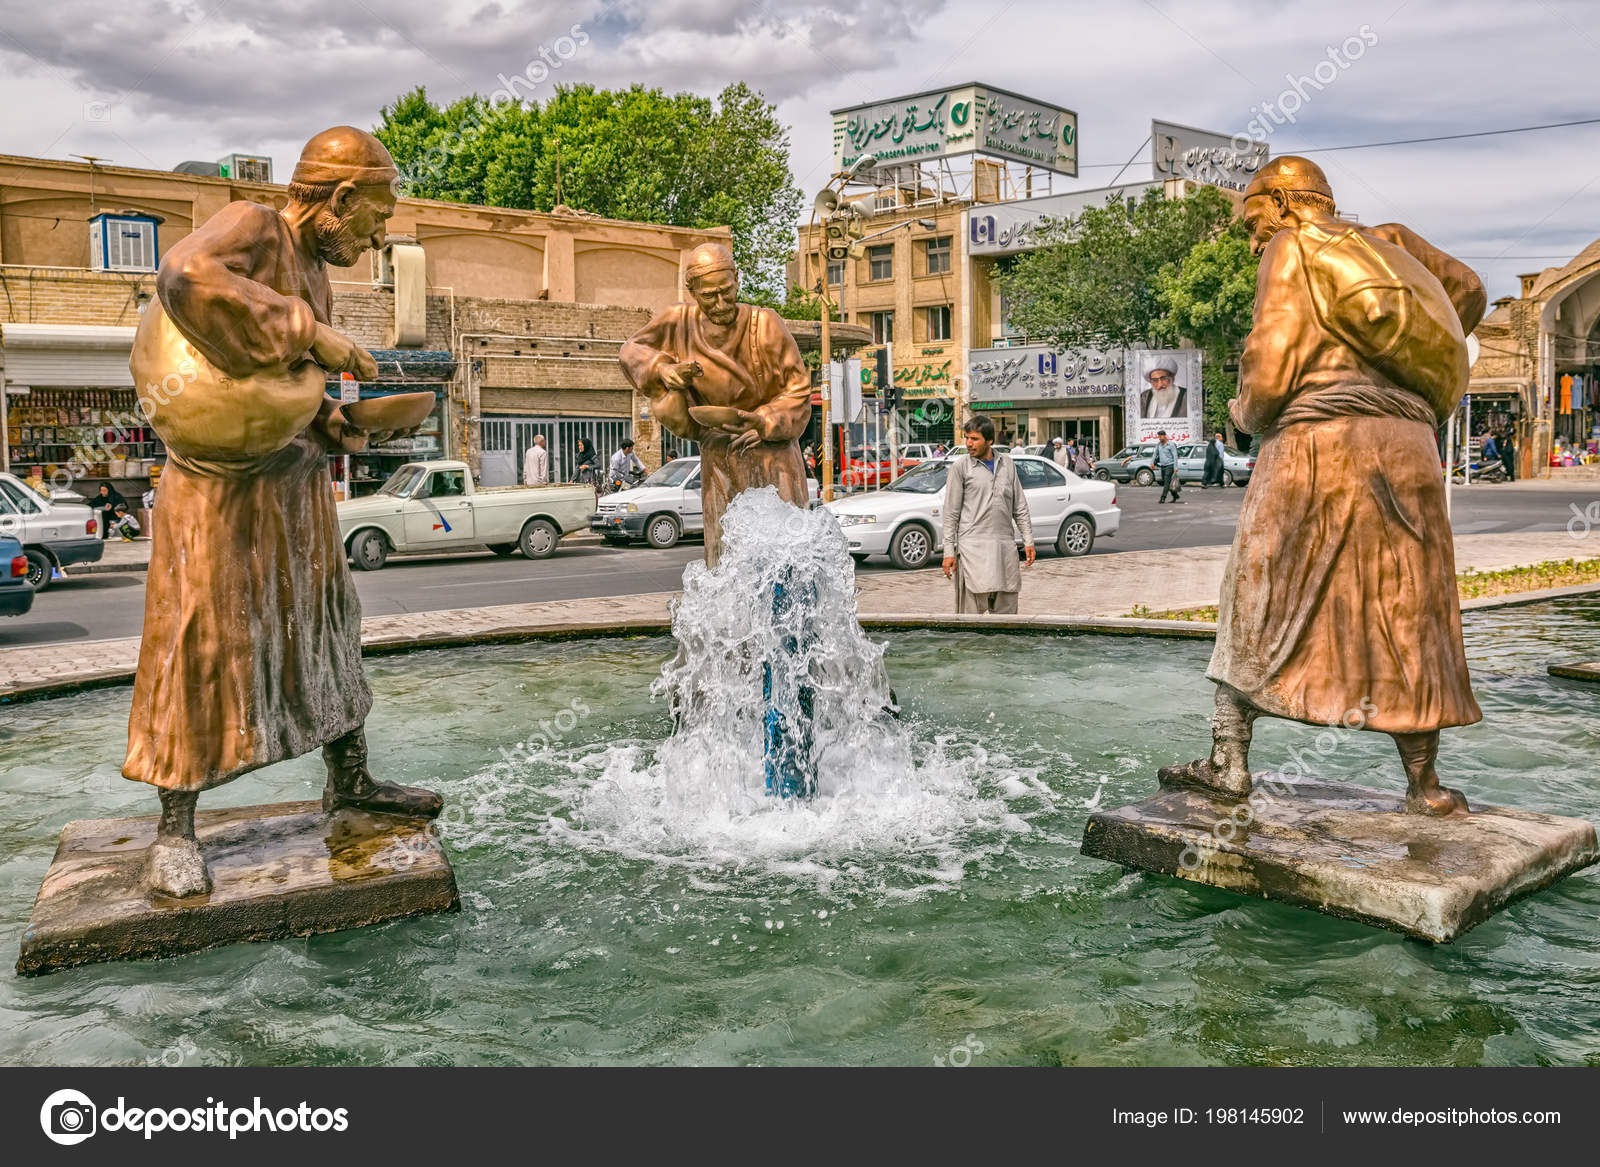 Image of: Yazd Stock Three Old Travelers Statues In Yazd Stock Photo Depositphotos Three Old Travelers Statues In Yazd Stock Editorial Photo